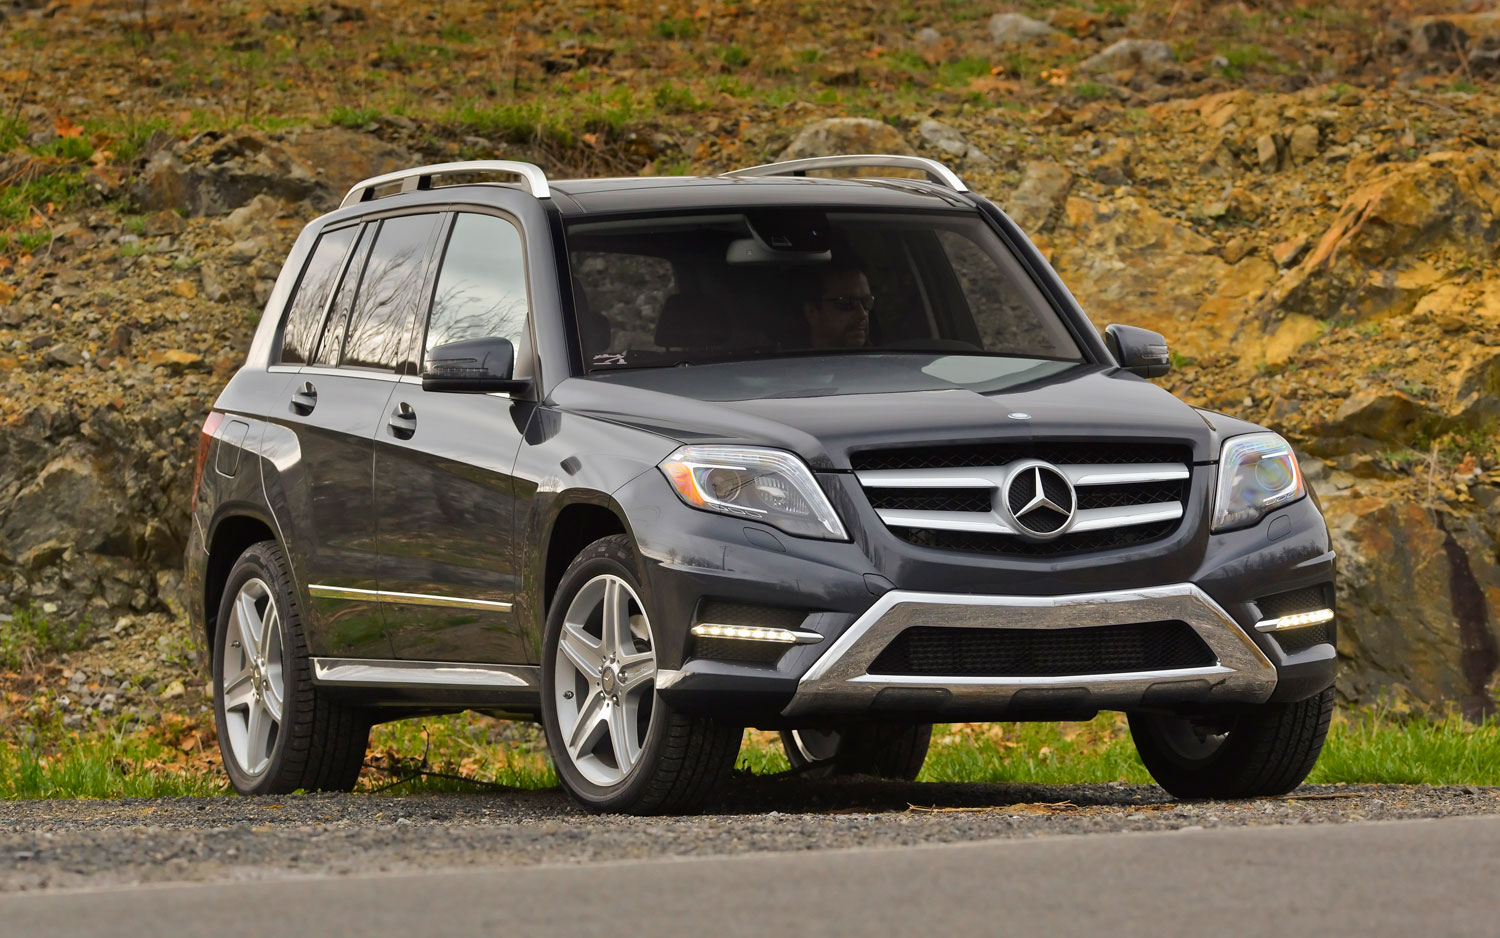 2013 Mercedes Benz GLK250 BlueTec 4Matic Front Right View1